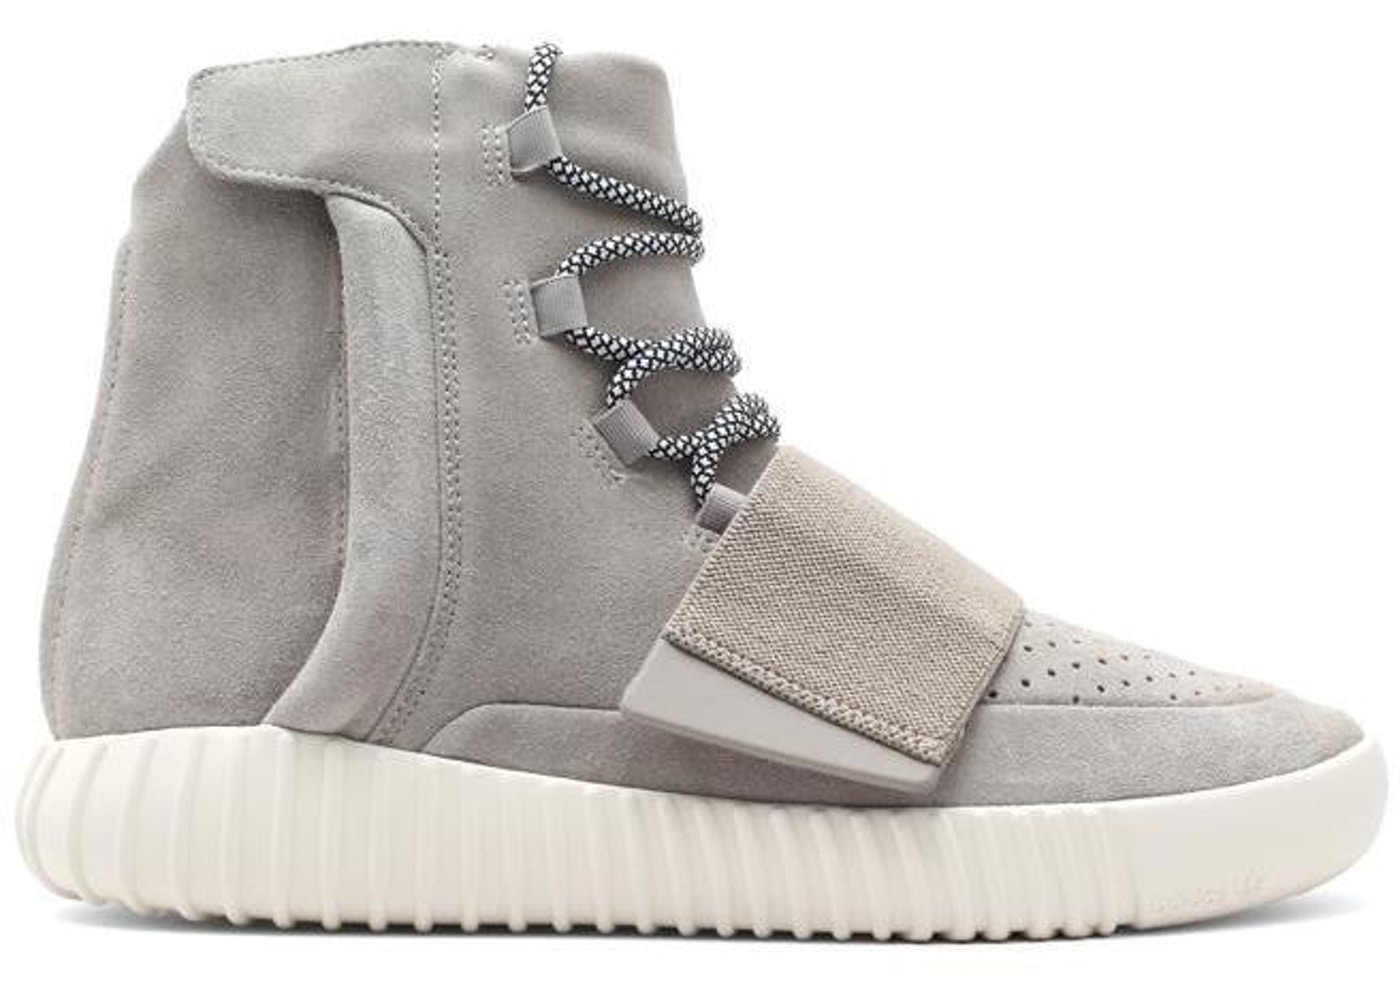 new concept 03ed8 6202a adidas Yeezy Boost 750 OG Light Brown